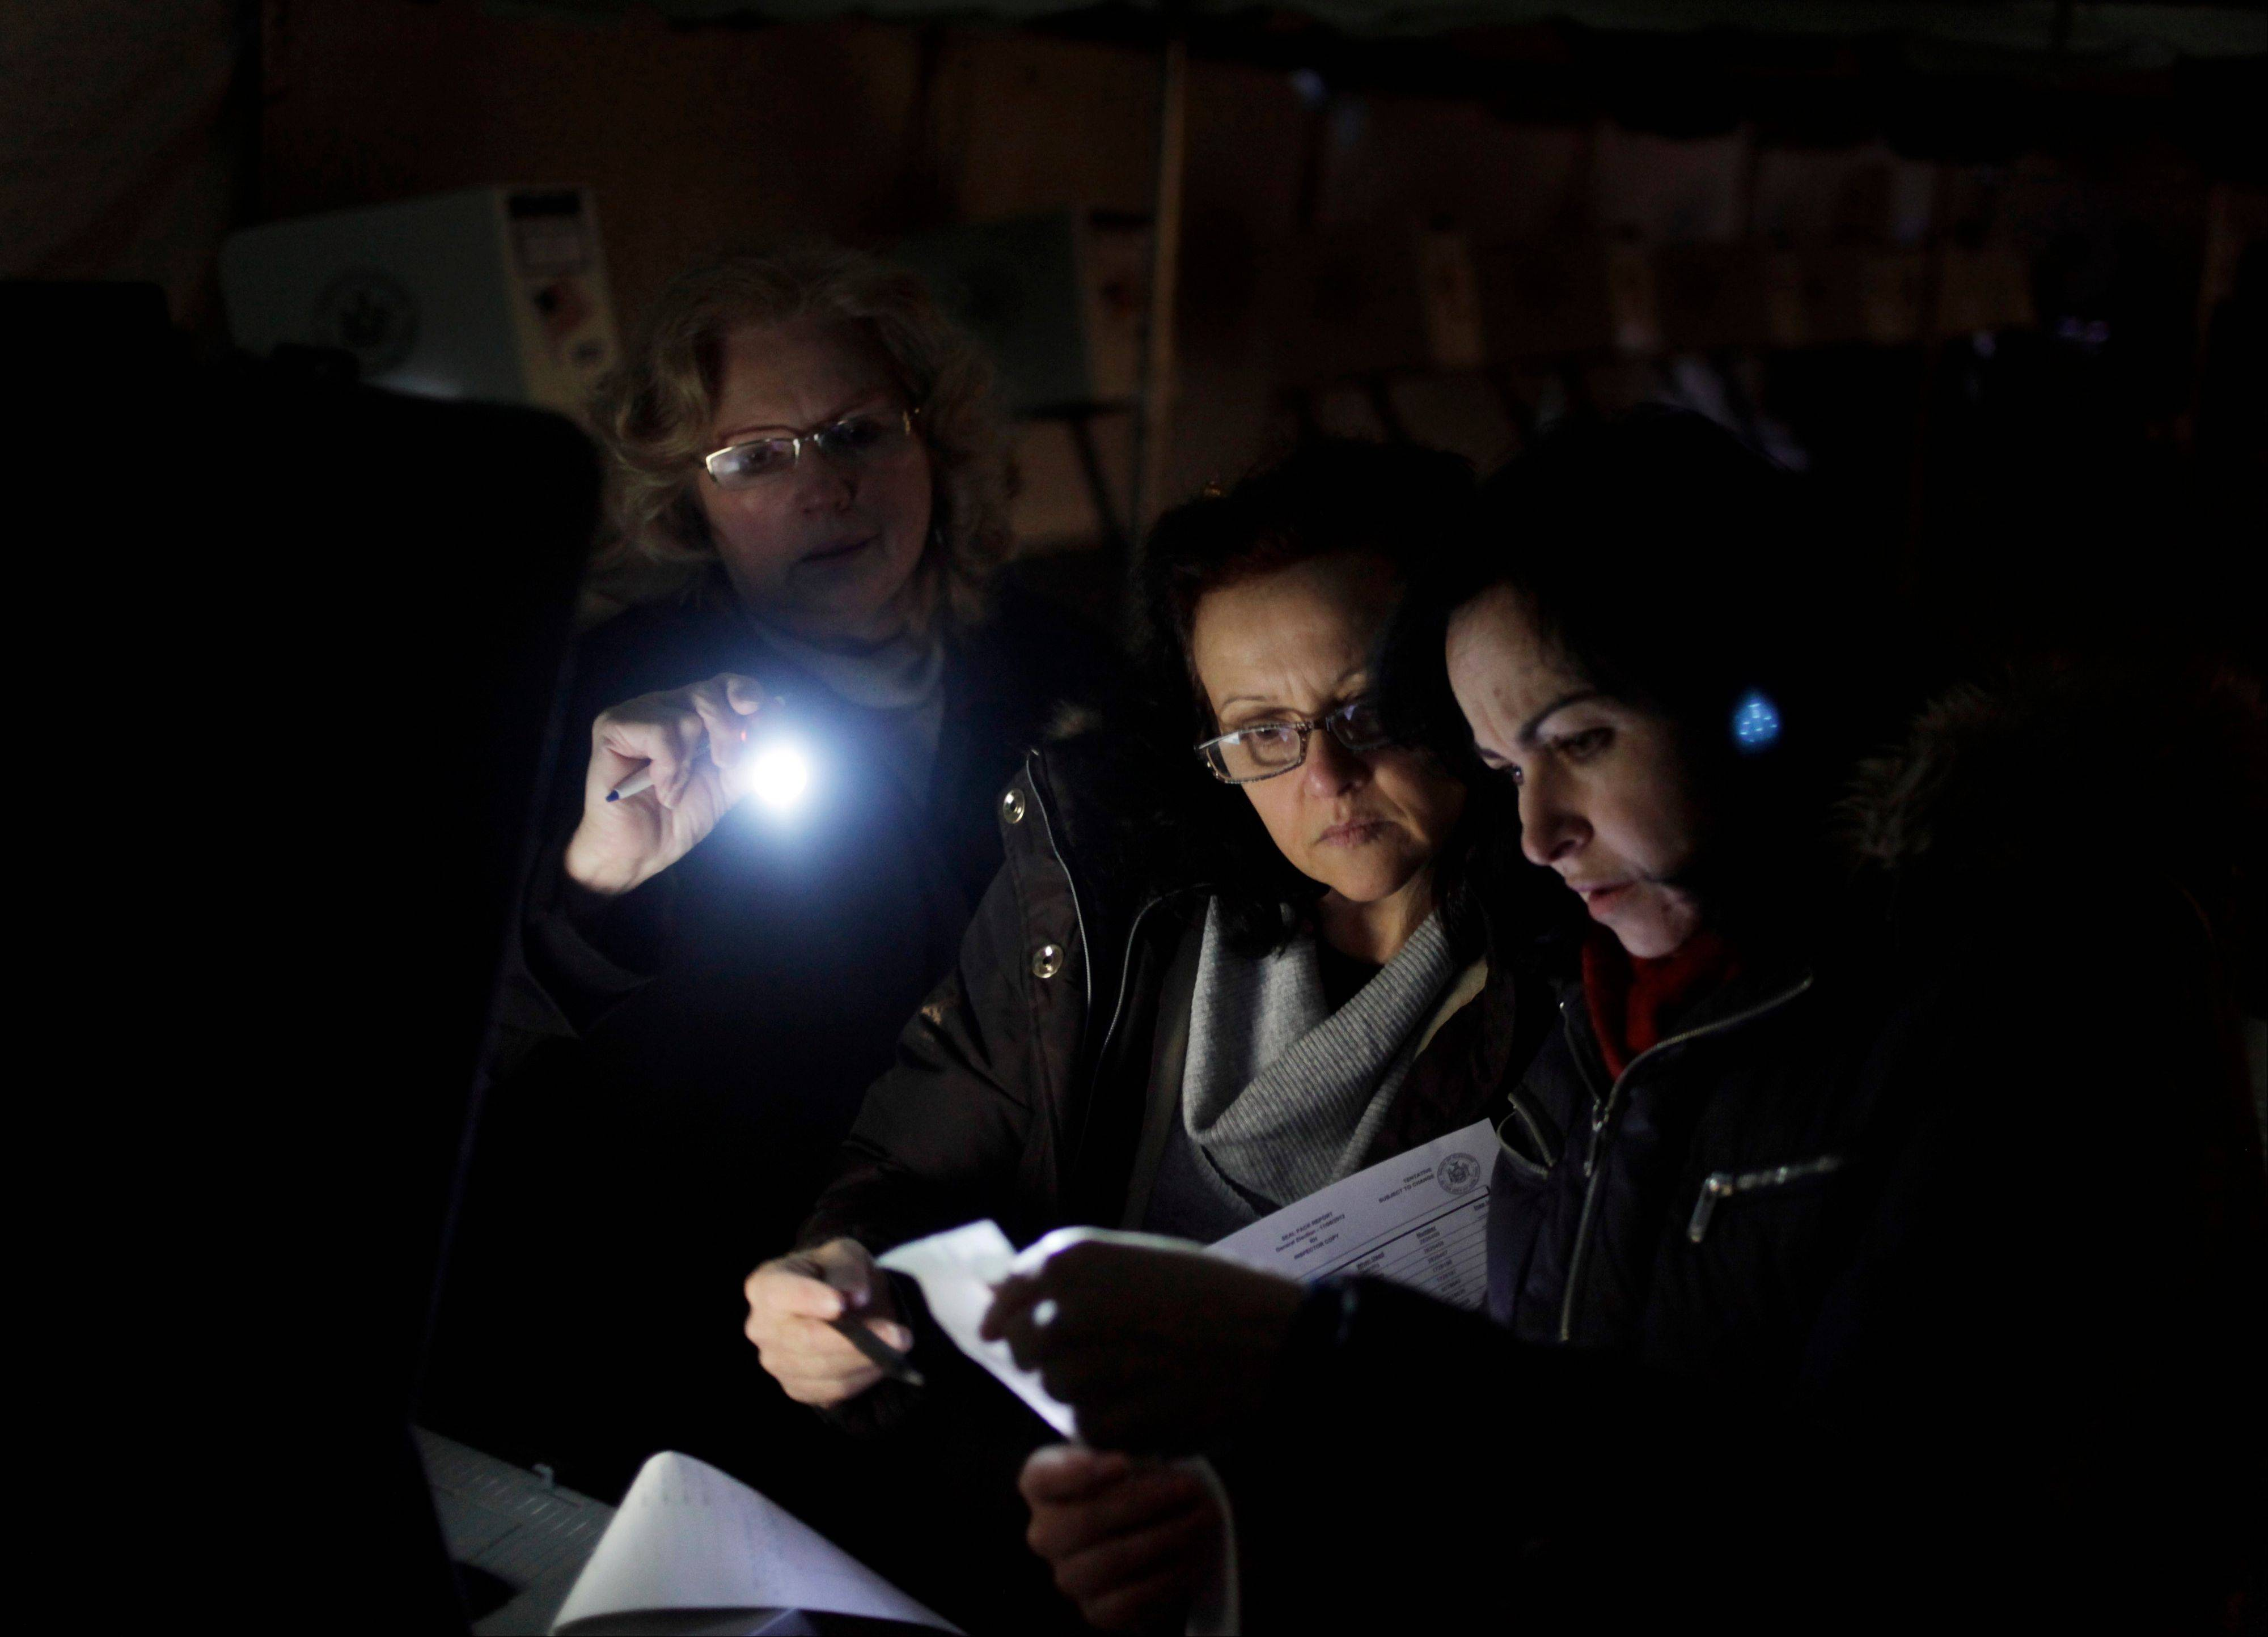 Poll workers Eva Prenga, right, Roxanne Blancero, center, and Carole Sevchuk try to start an optical scanner voting machine in the cold and dark at a polling station in a tent in the Midland Beach section of Staten Island, New York, Tuesday, Nov. 6, 2012. The original polling site, a school, was damaged by Superstorm Sandy.